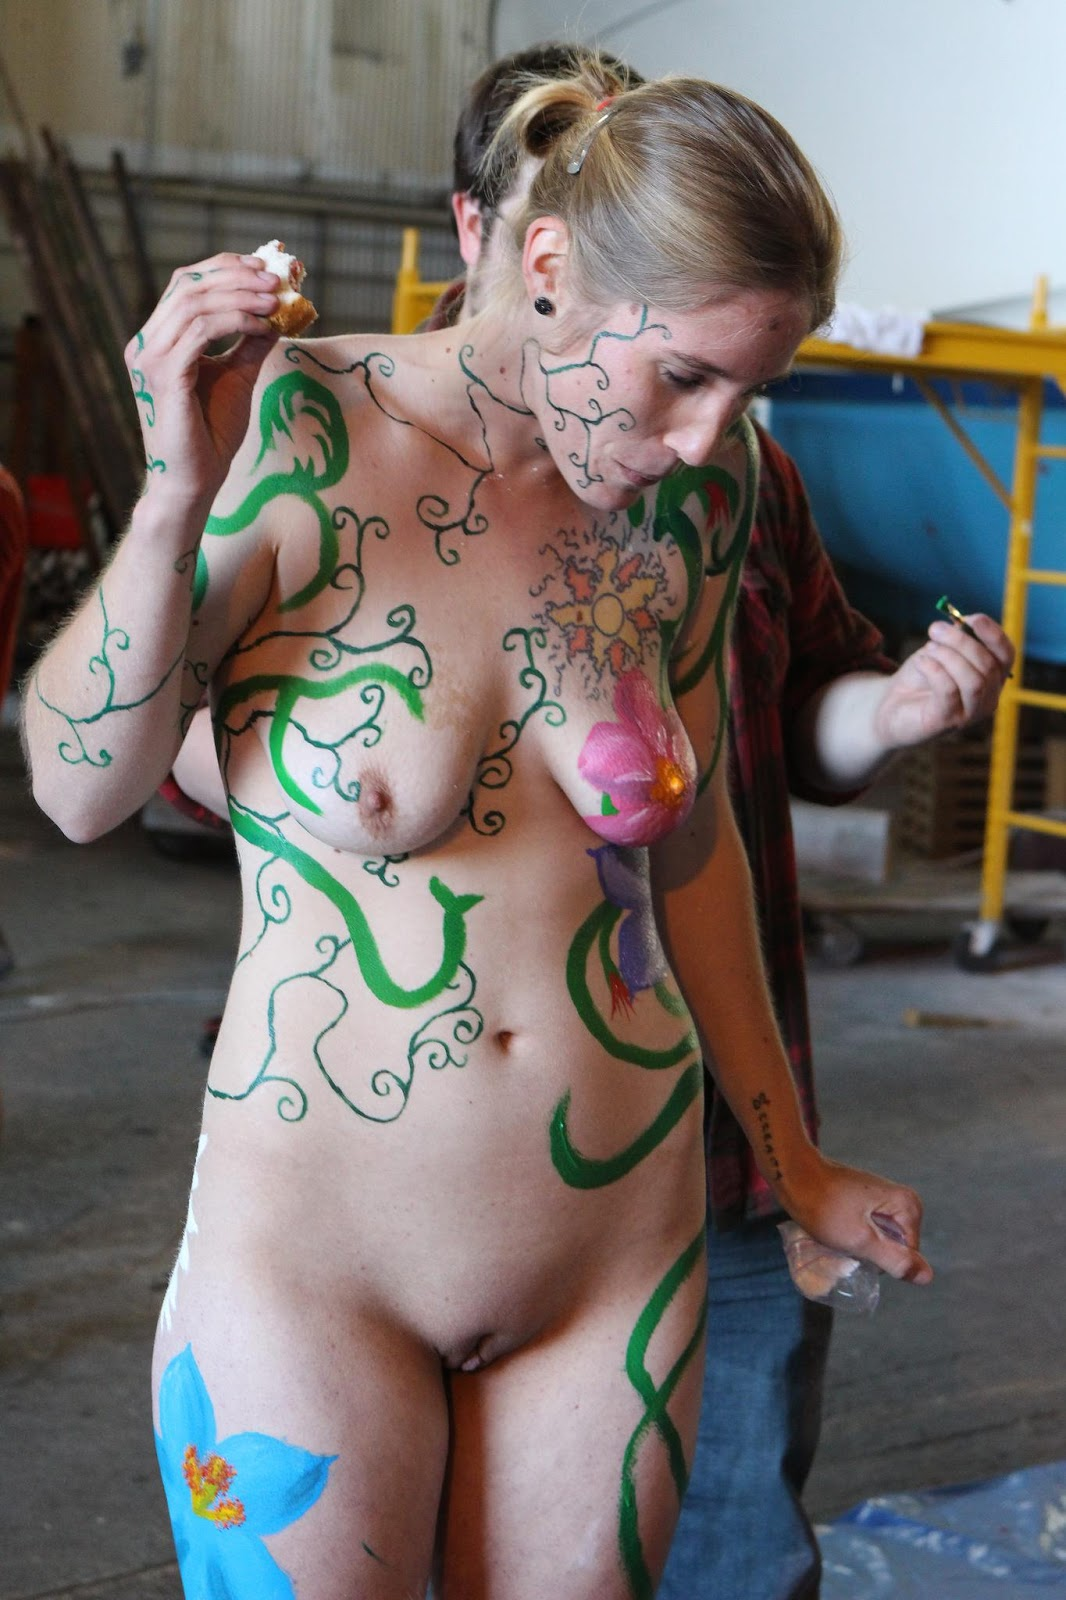 Junior miss body painting pussy, britney spears naked porn pics